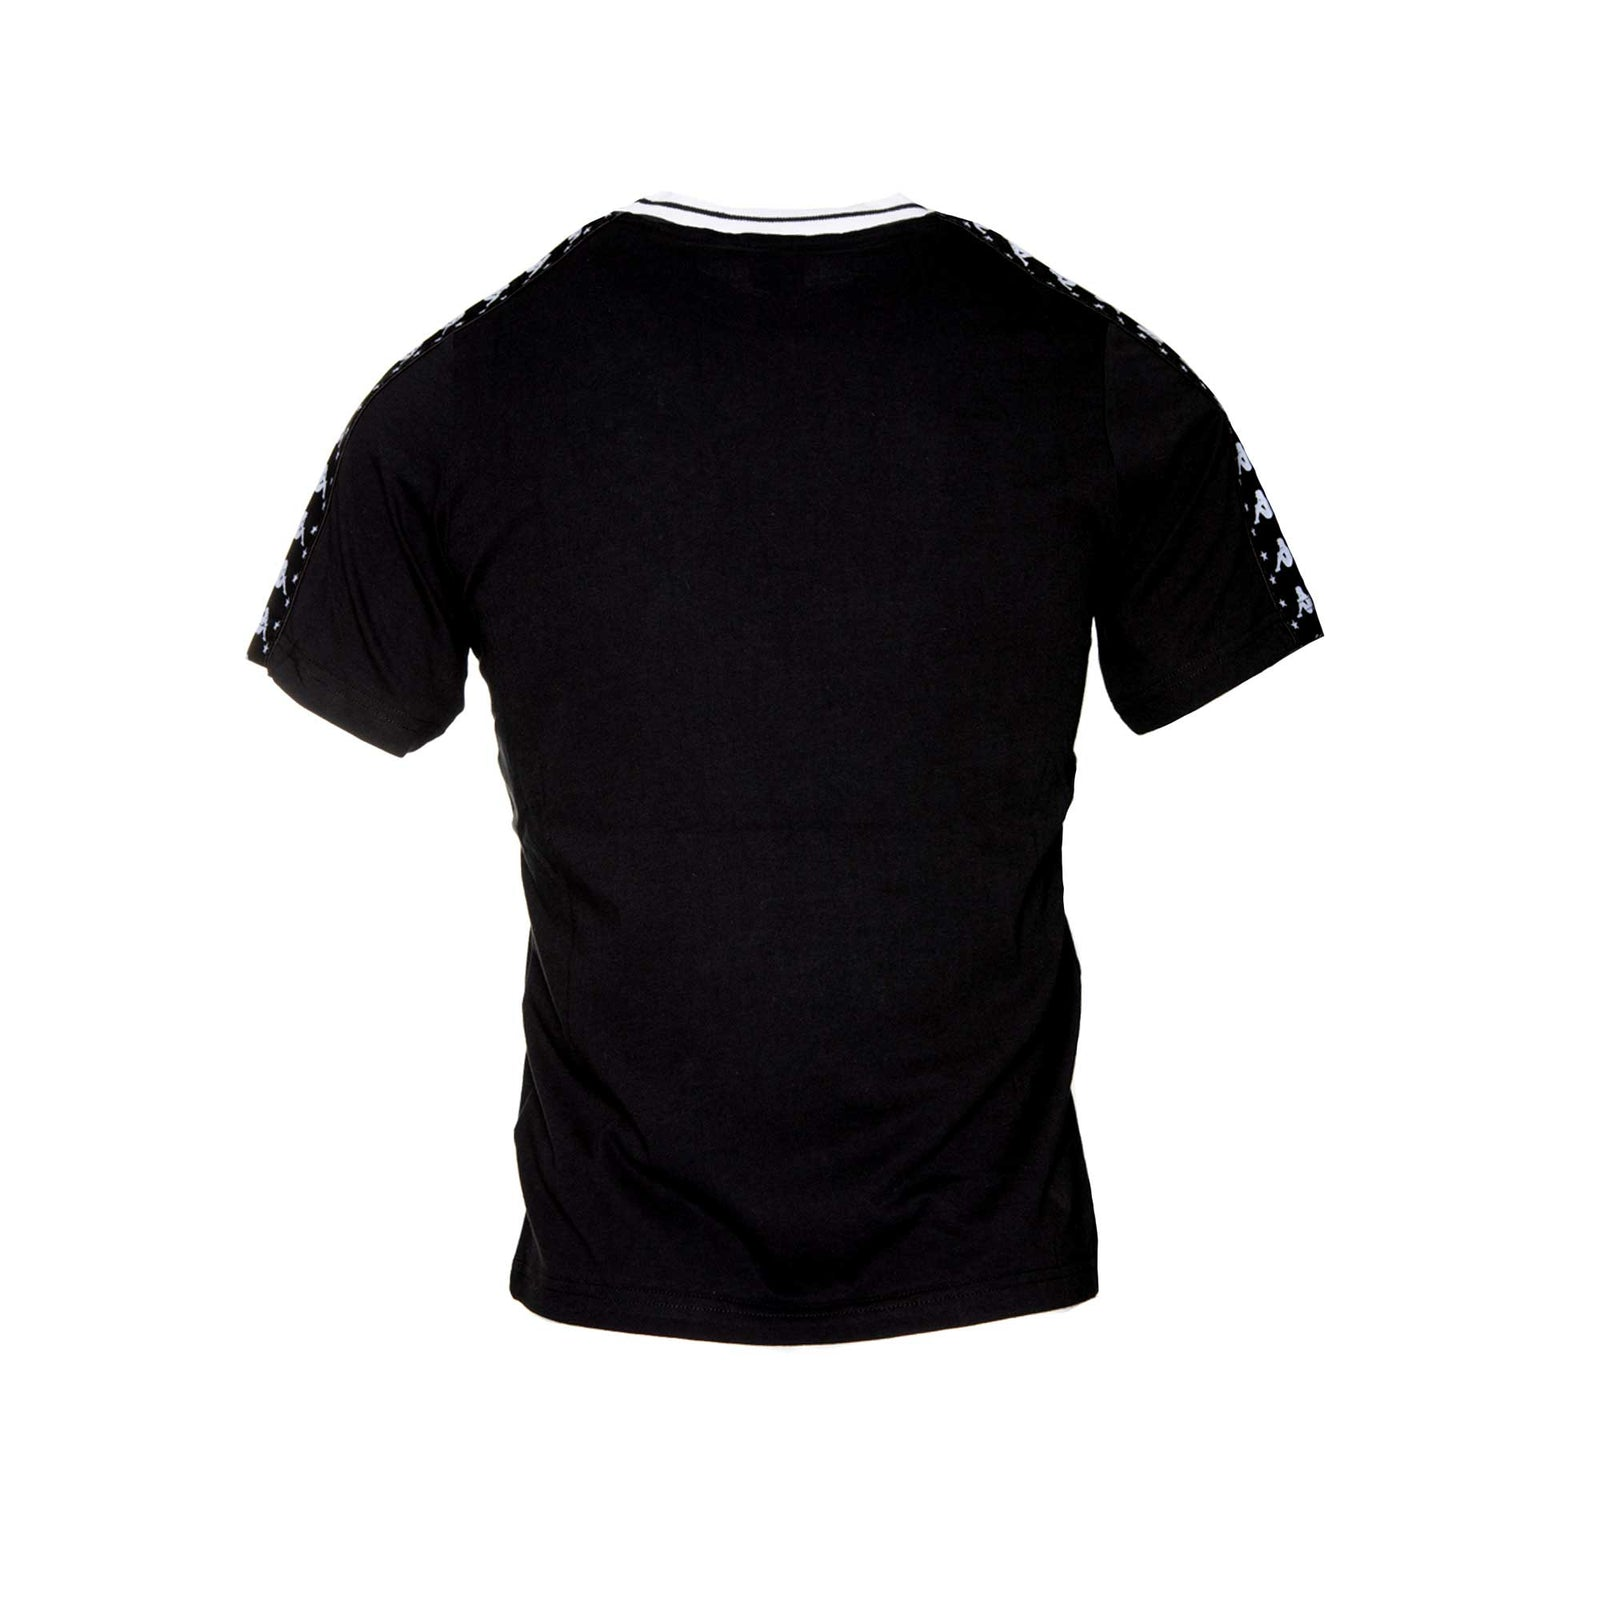 Kappa Authentic Anchen T-Shirt Black